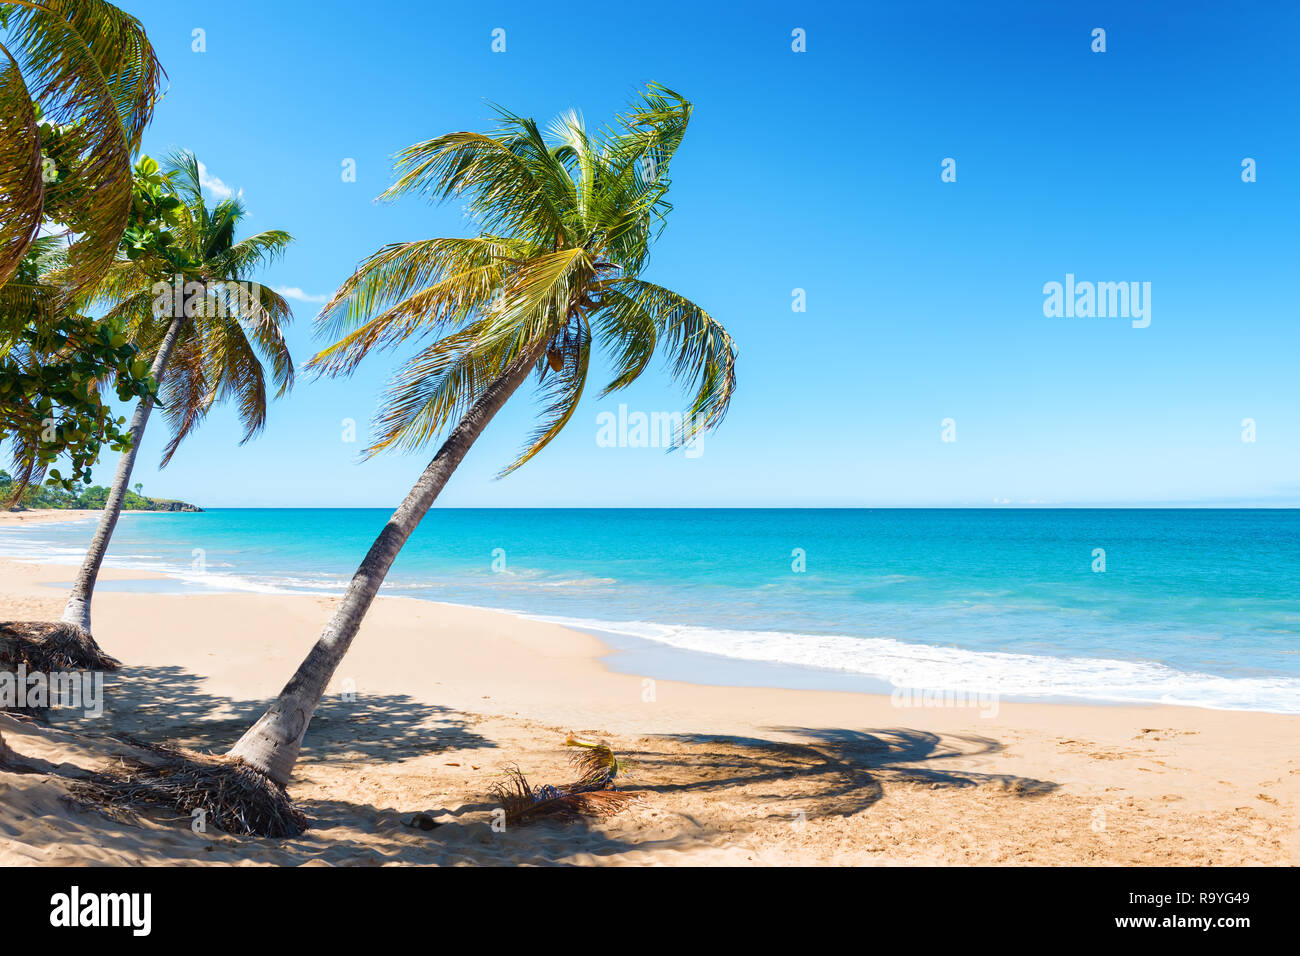 Coconut trees, golden sand, turquoise water and blue sky